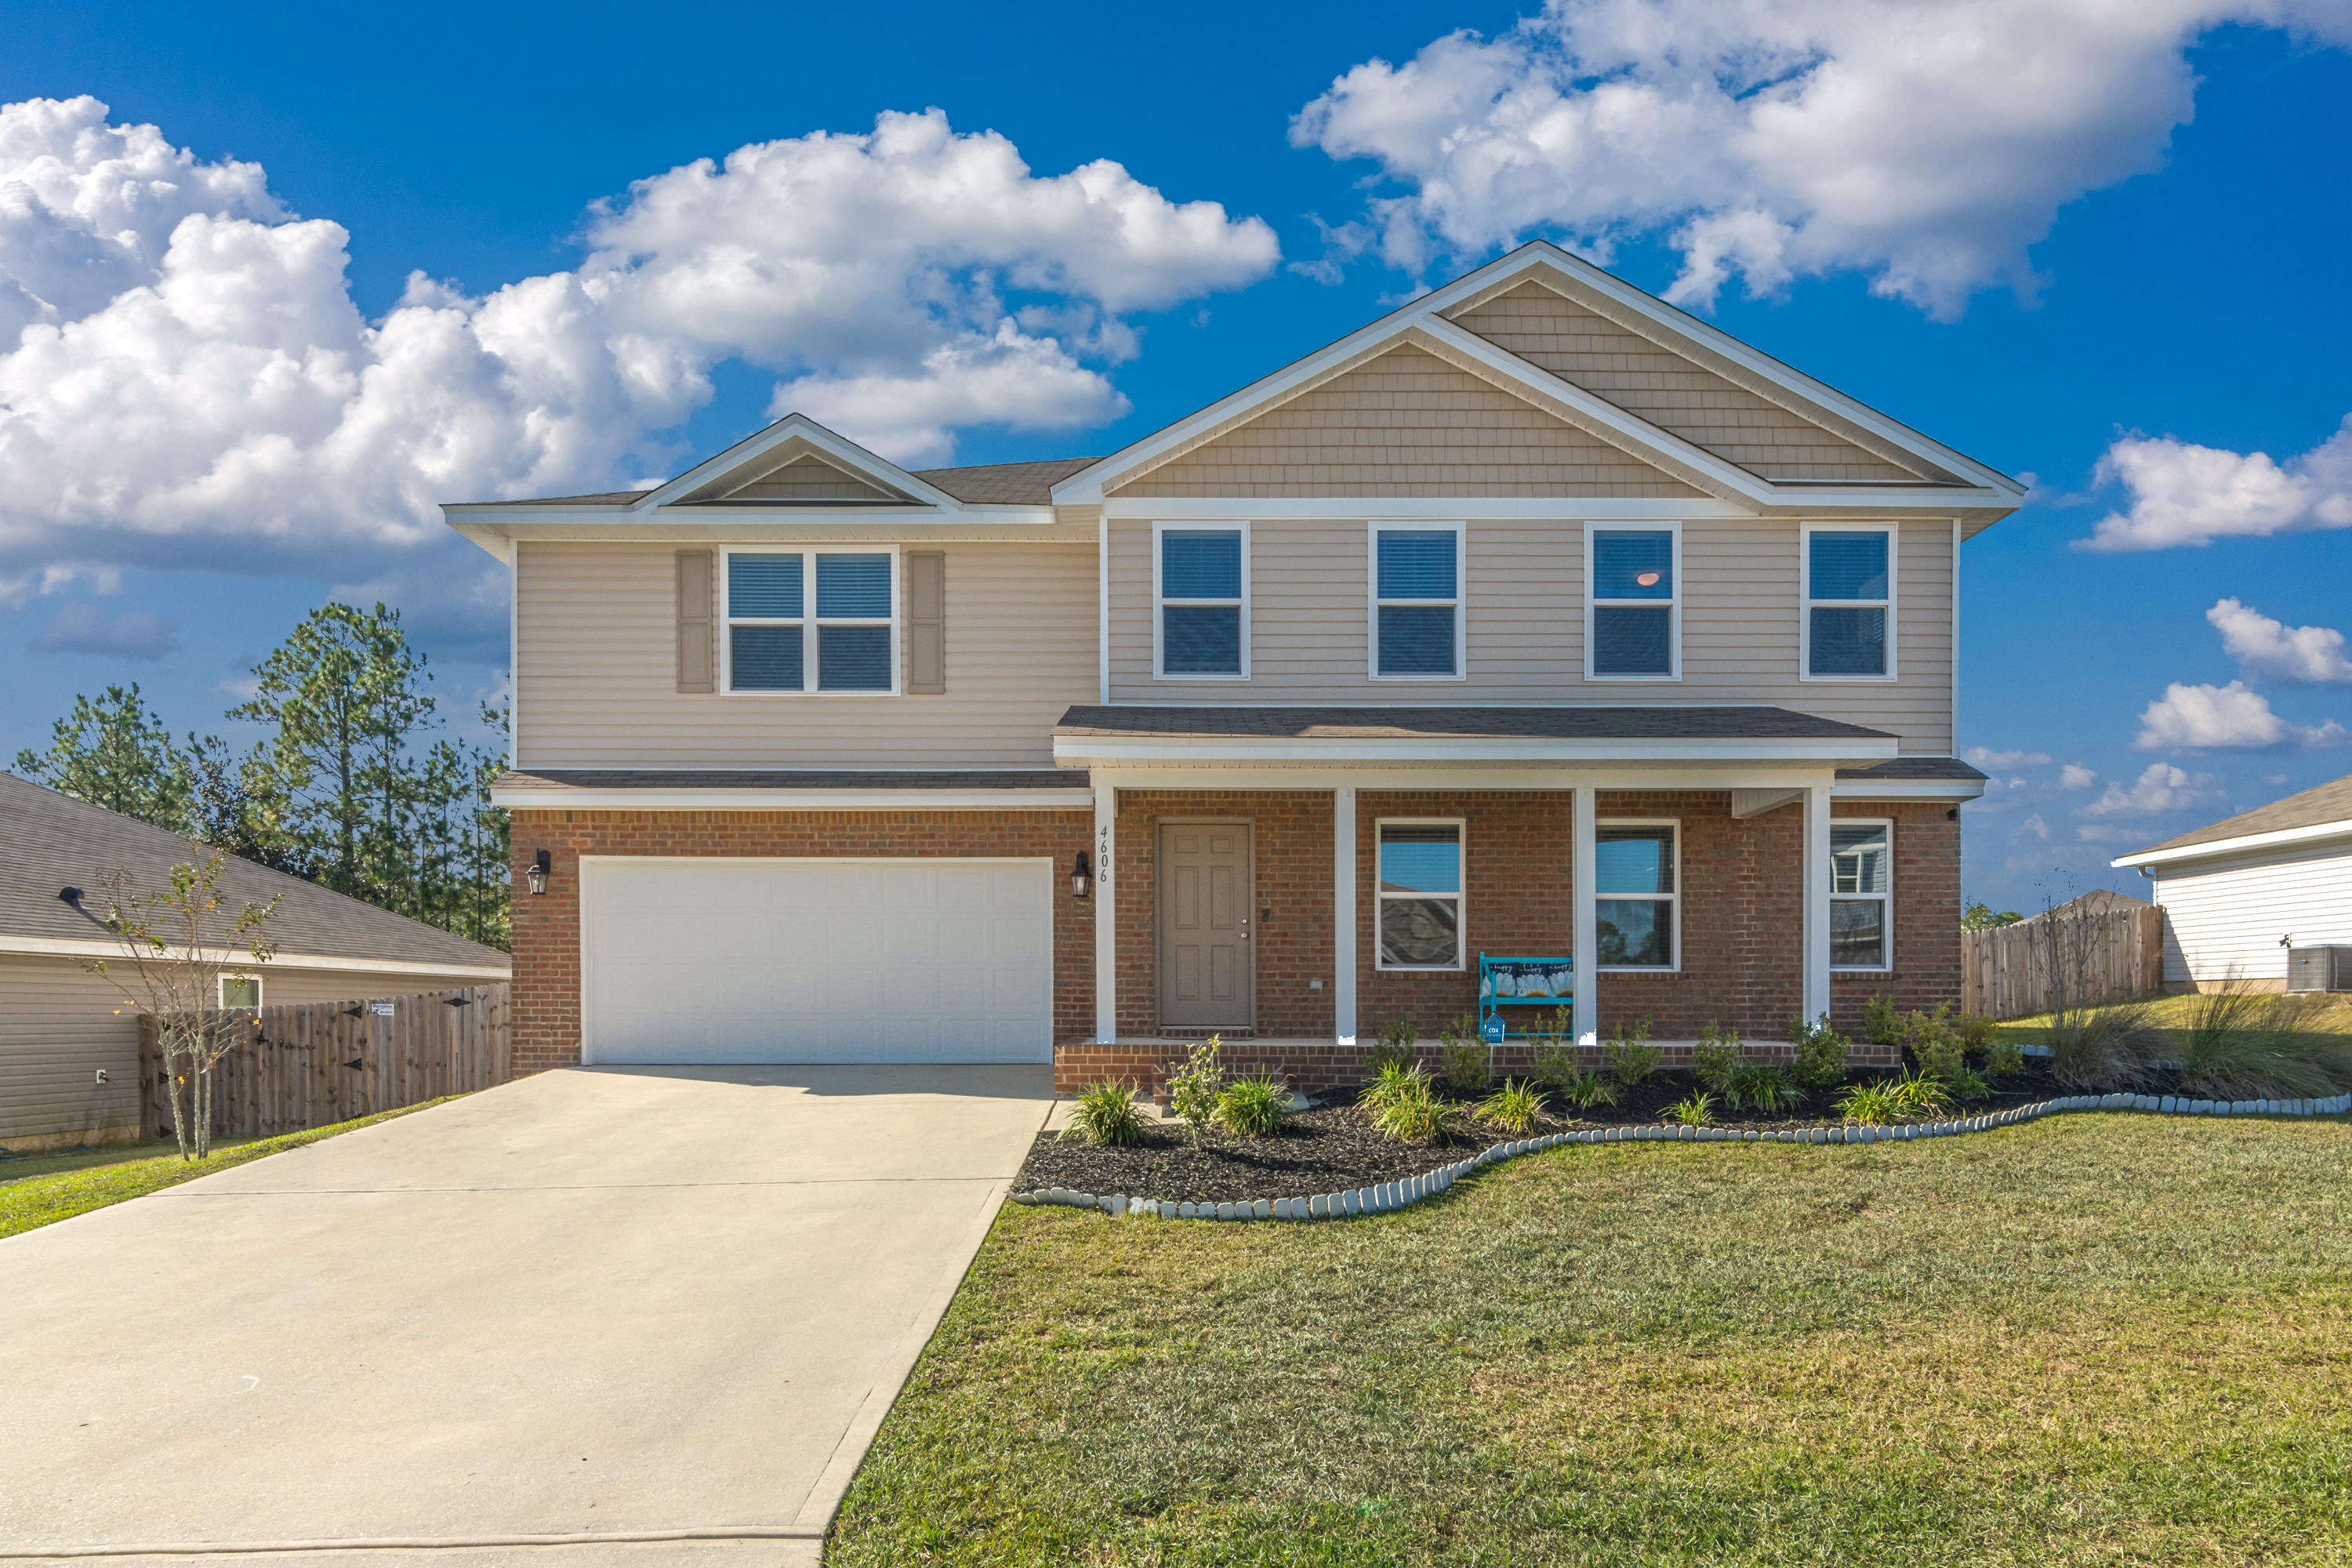 Photo of home for sale at 4606 Plover, Crestview FL